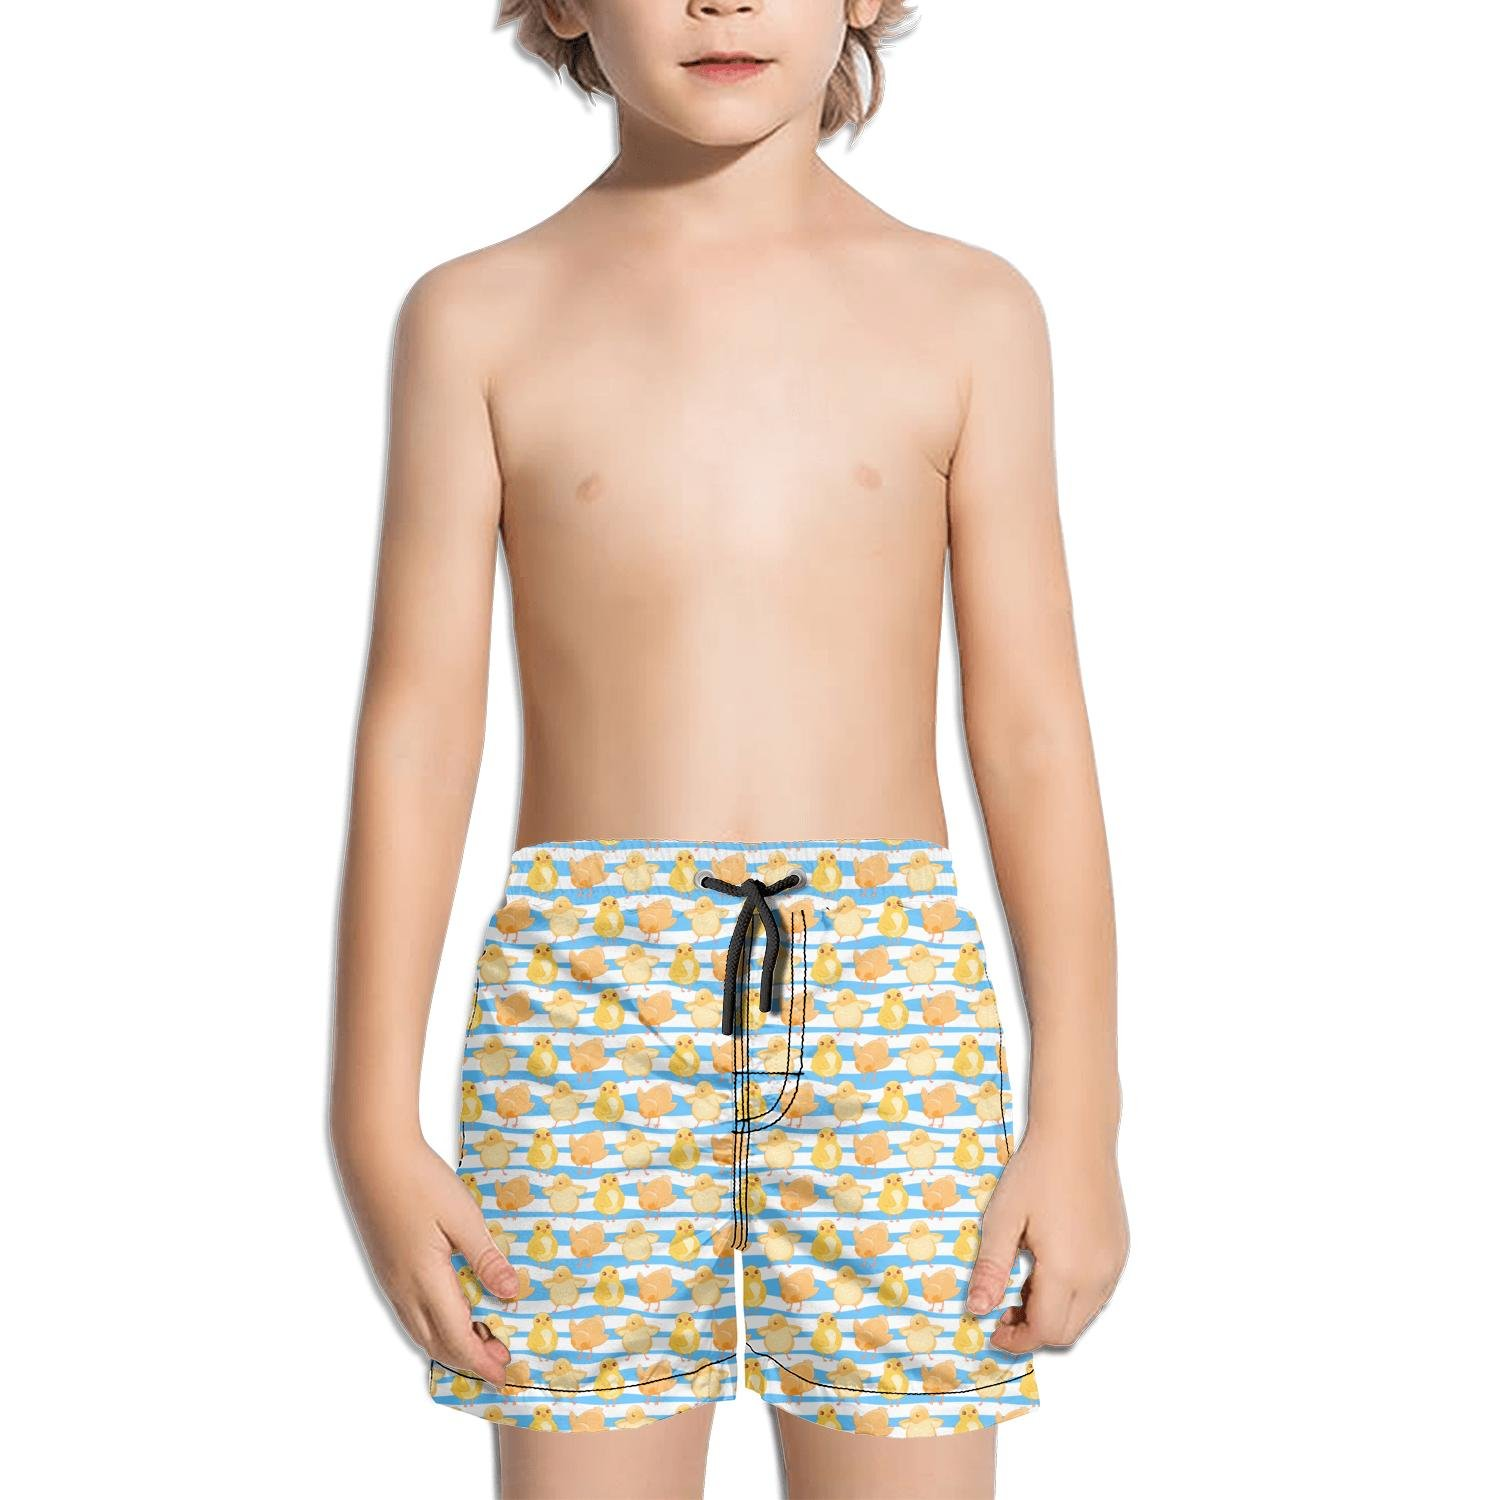 Lenard Hughes Boys Quick Dry Beach Shorts with Pockets Funny Chick Dancing Swim Trunks for Summer